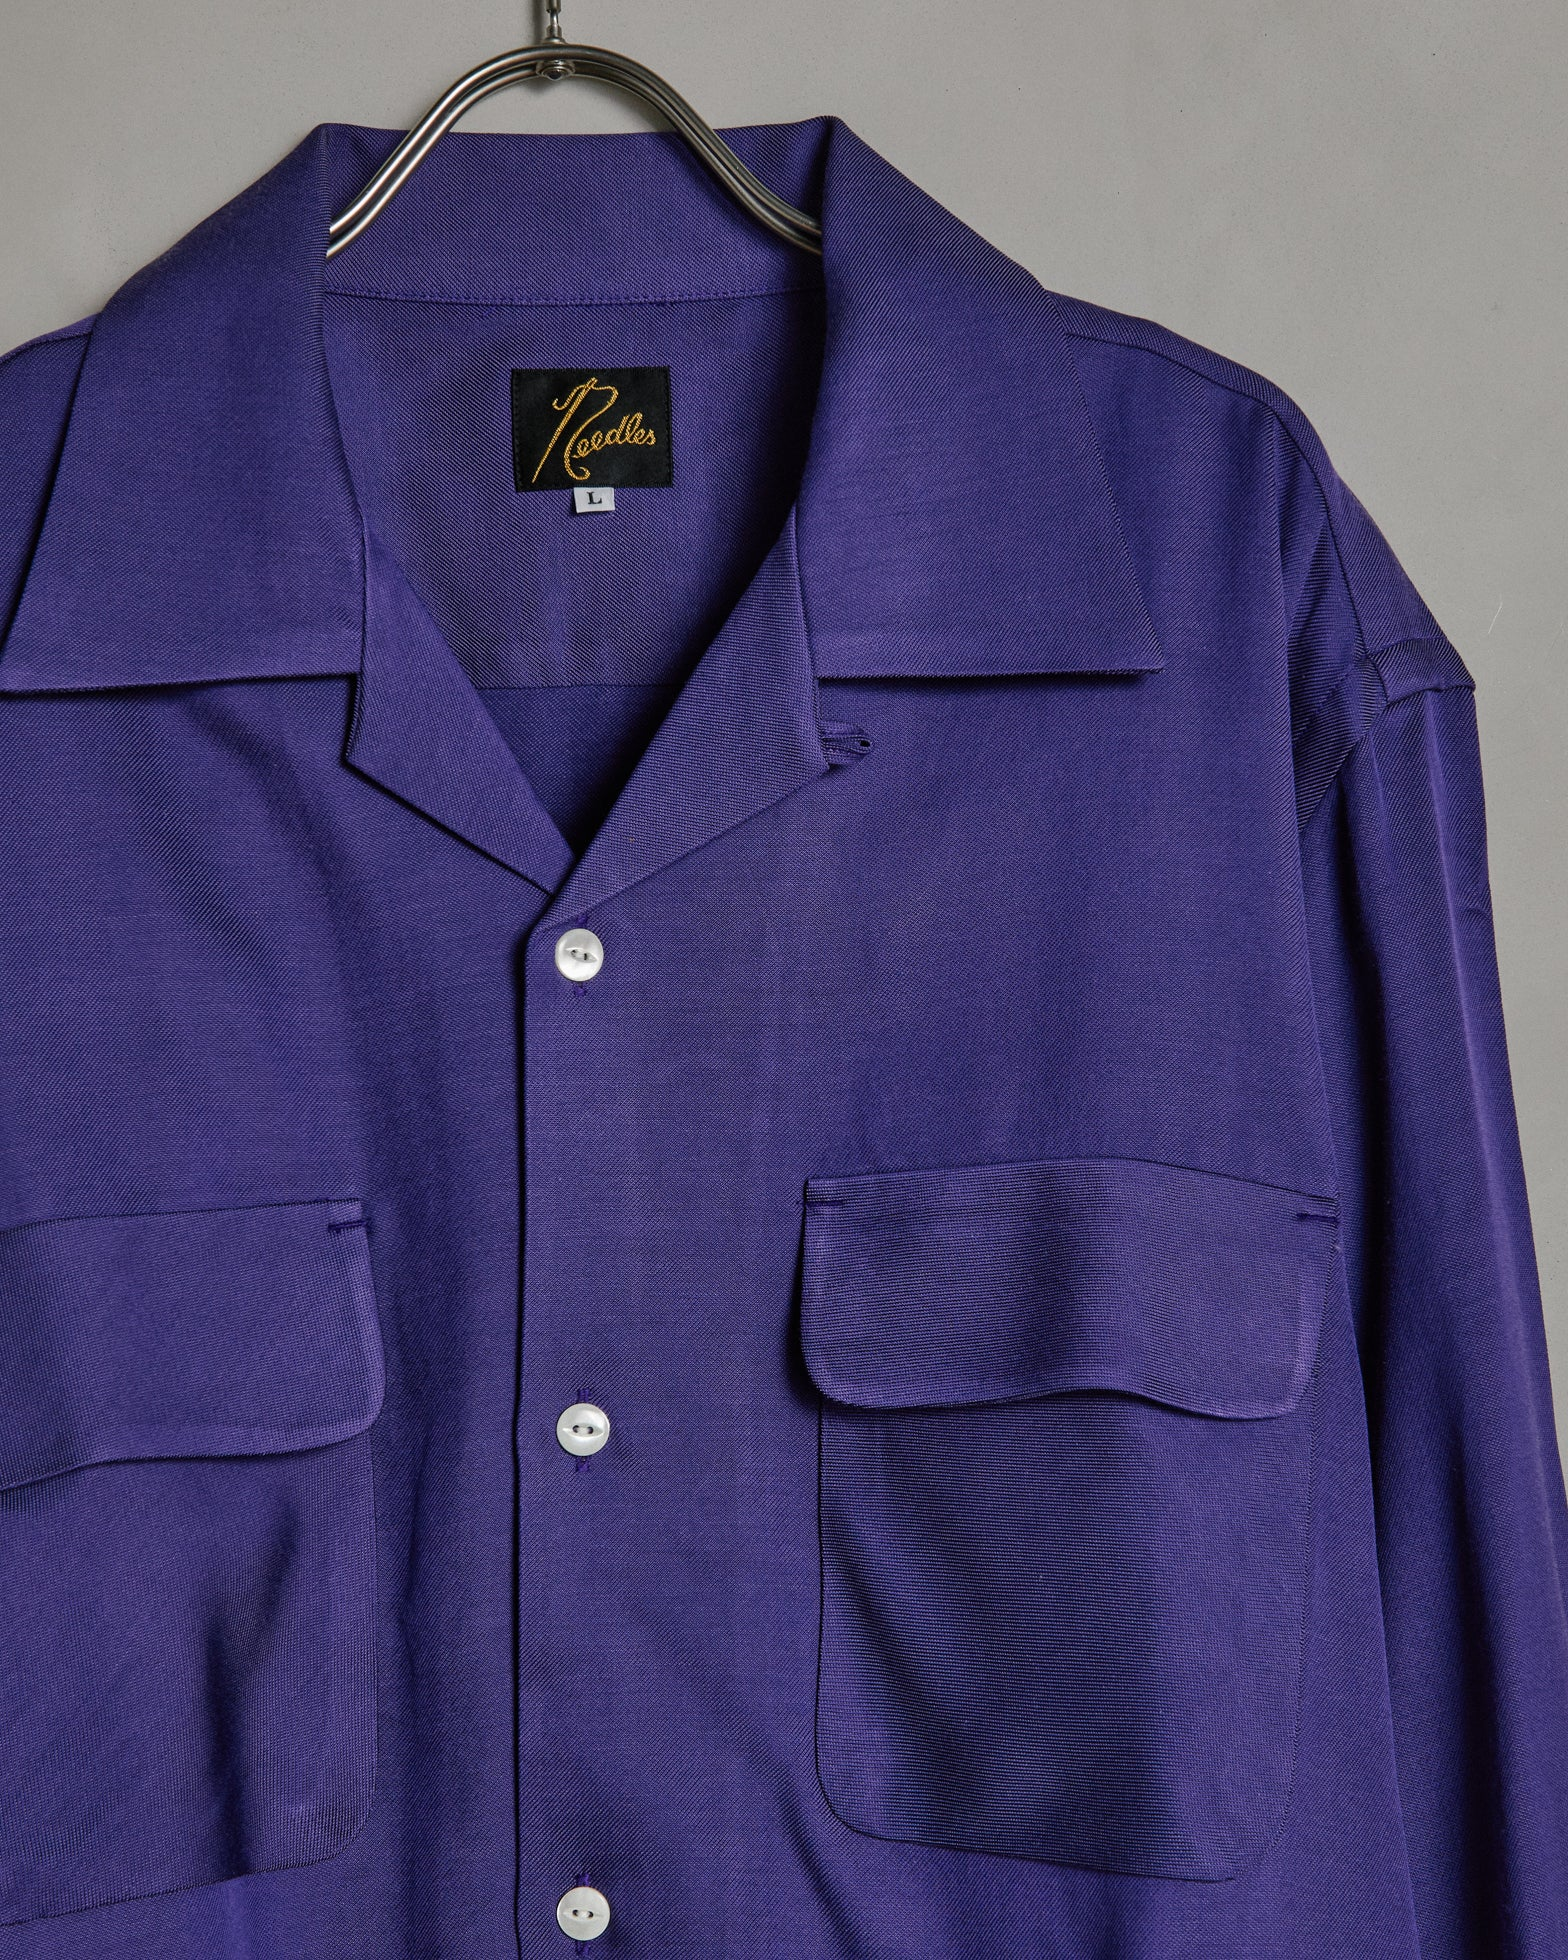 C.O.B. Classis Shirt in Purple